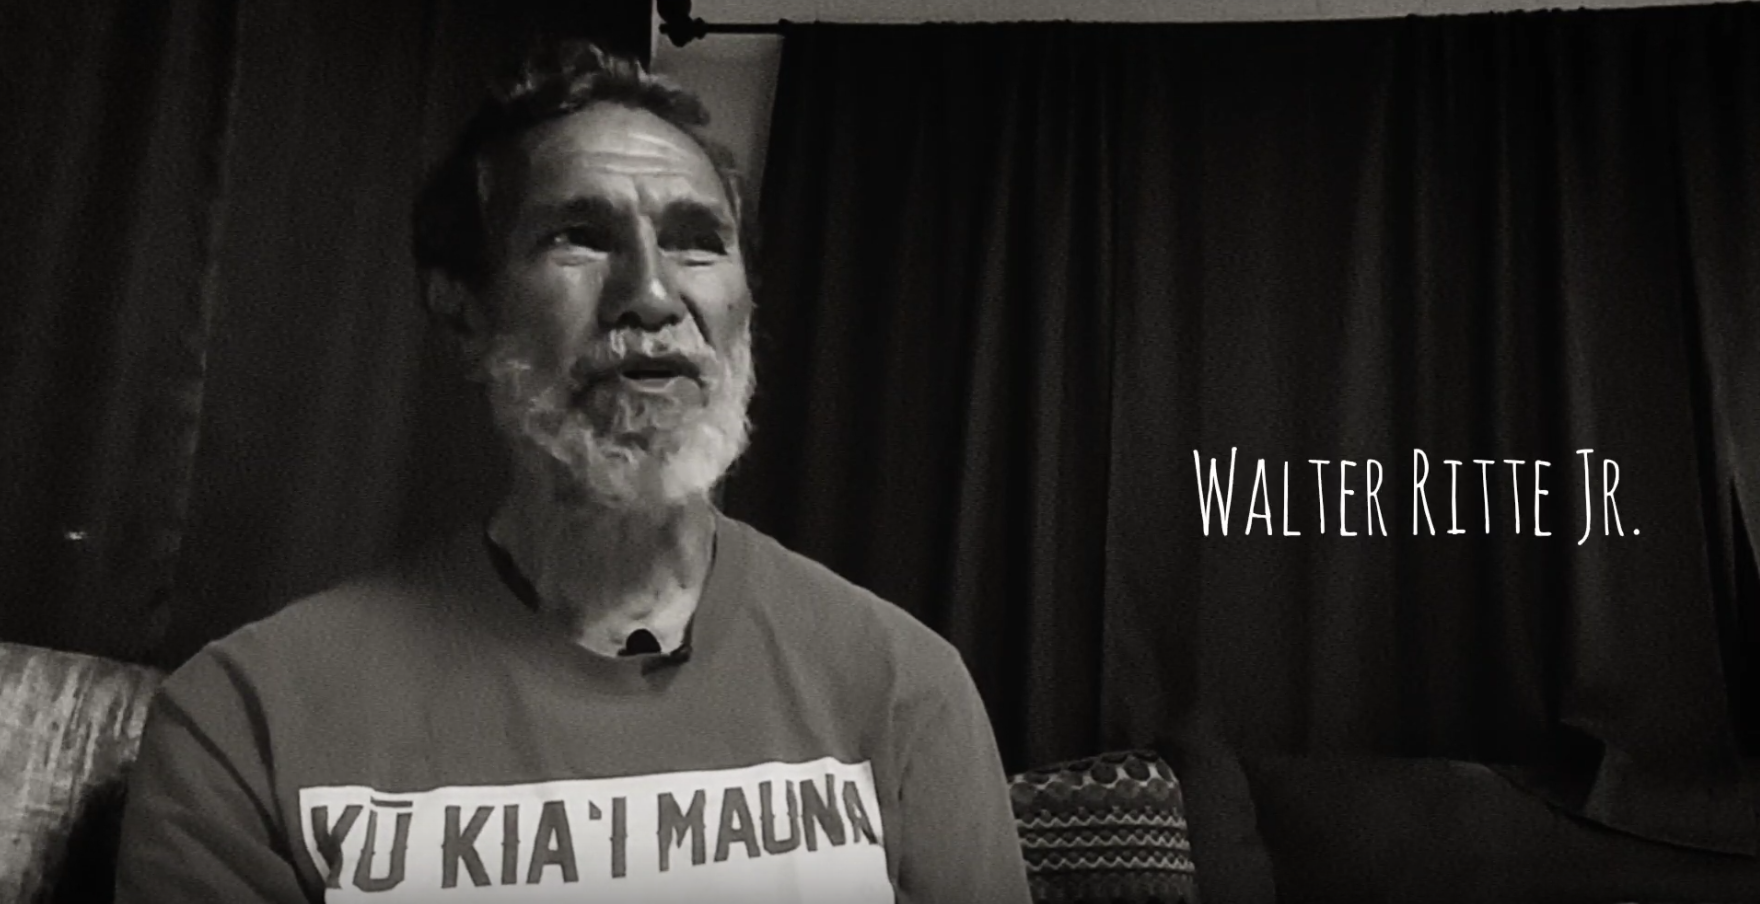 5 minutes with Uncle Walter Ritte Jr. on Mauna Kea